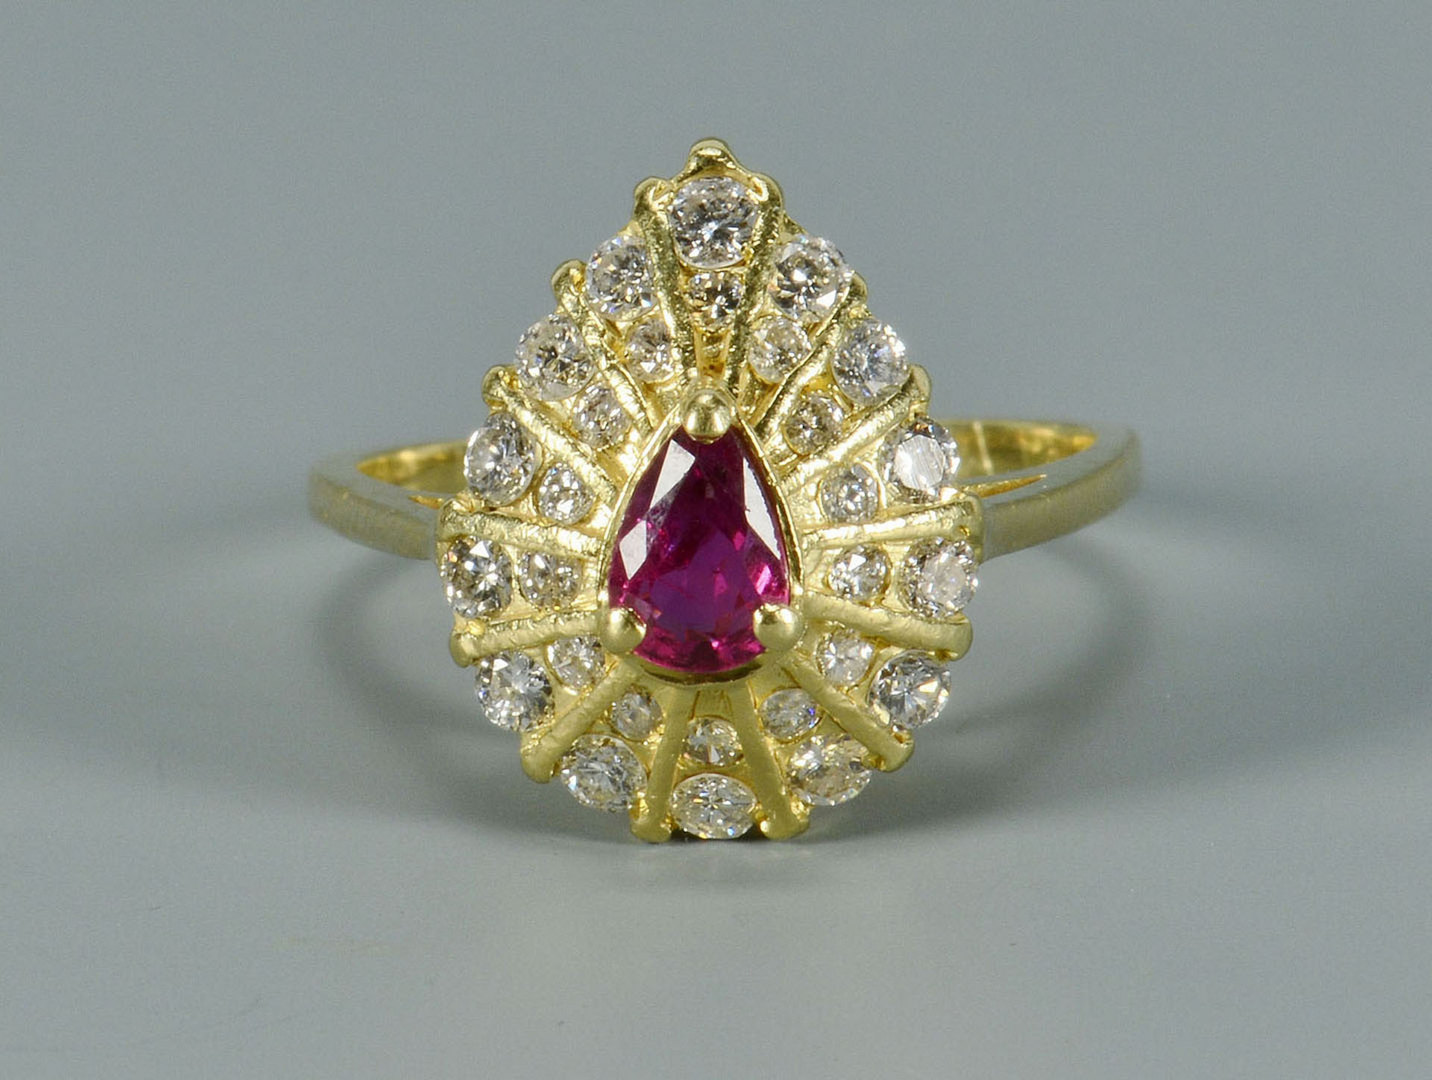 Lot 491: 18k Pear-shaped Ruby and Diamond Ring